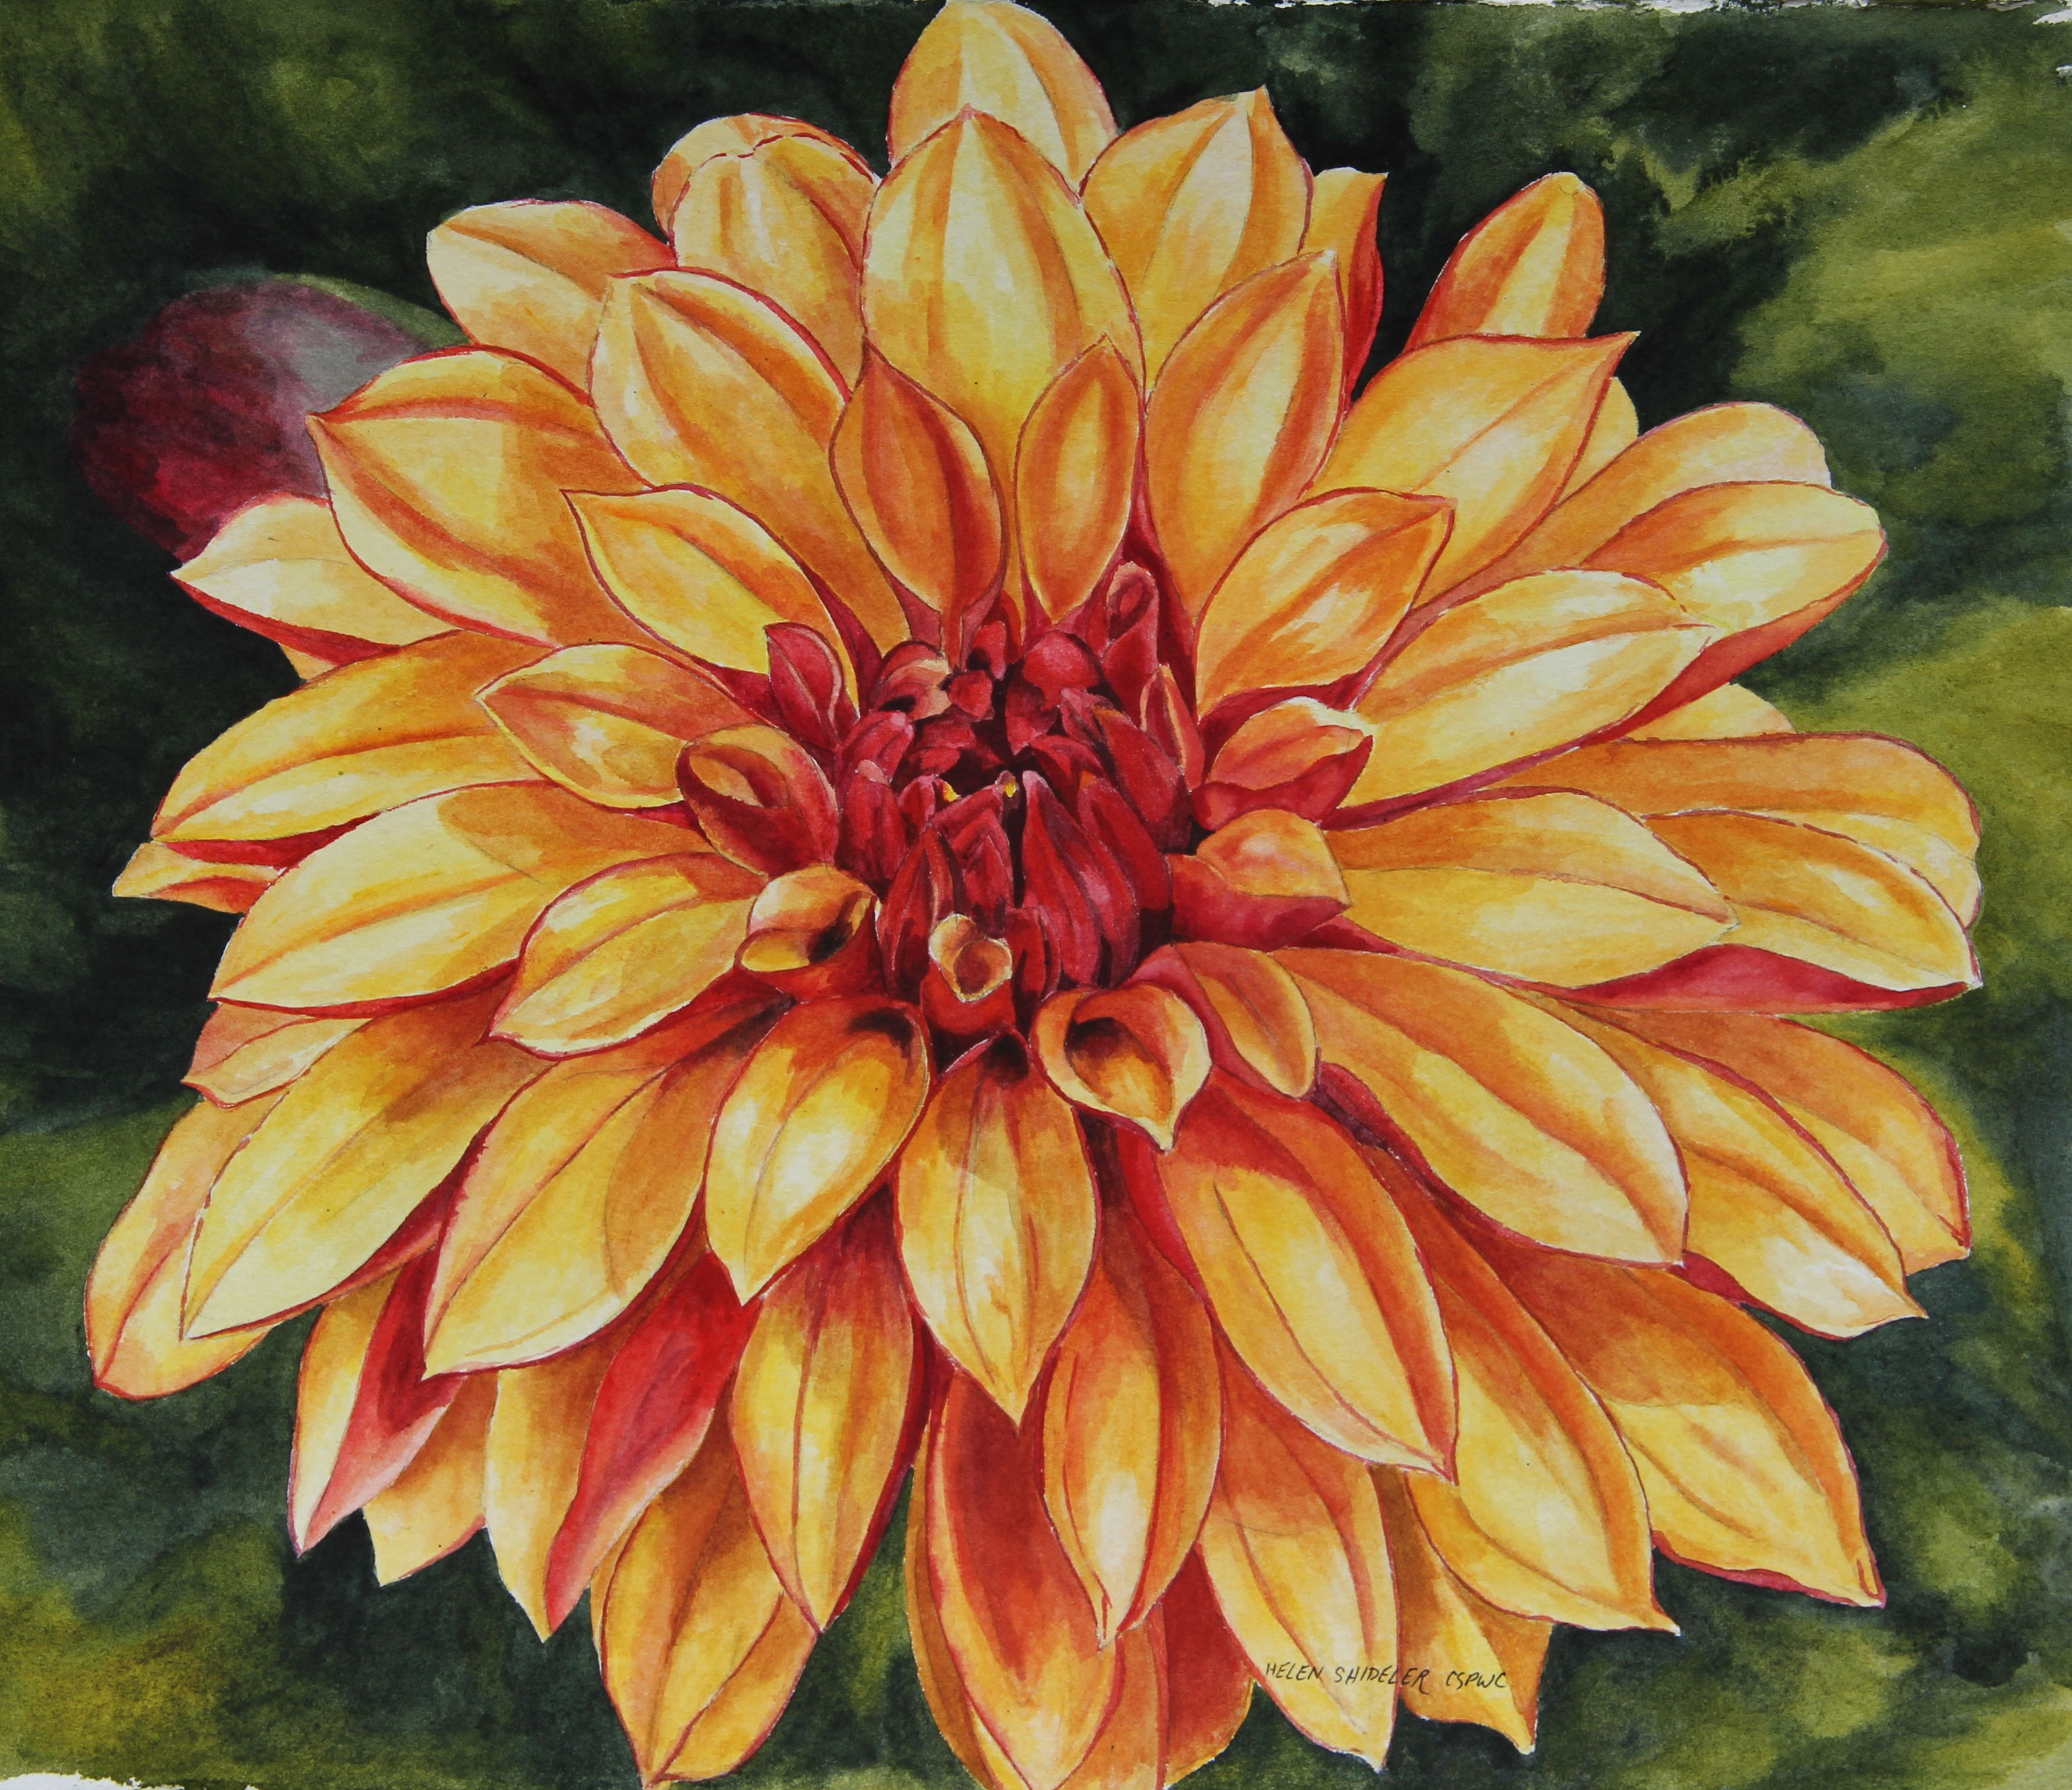 dahlia flower painting - Google Search